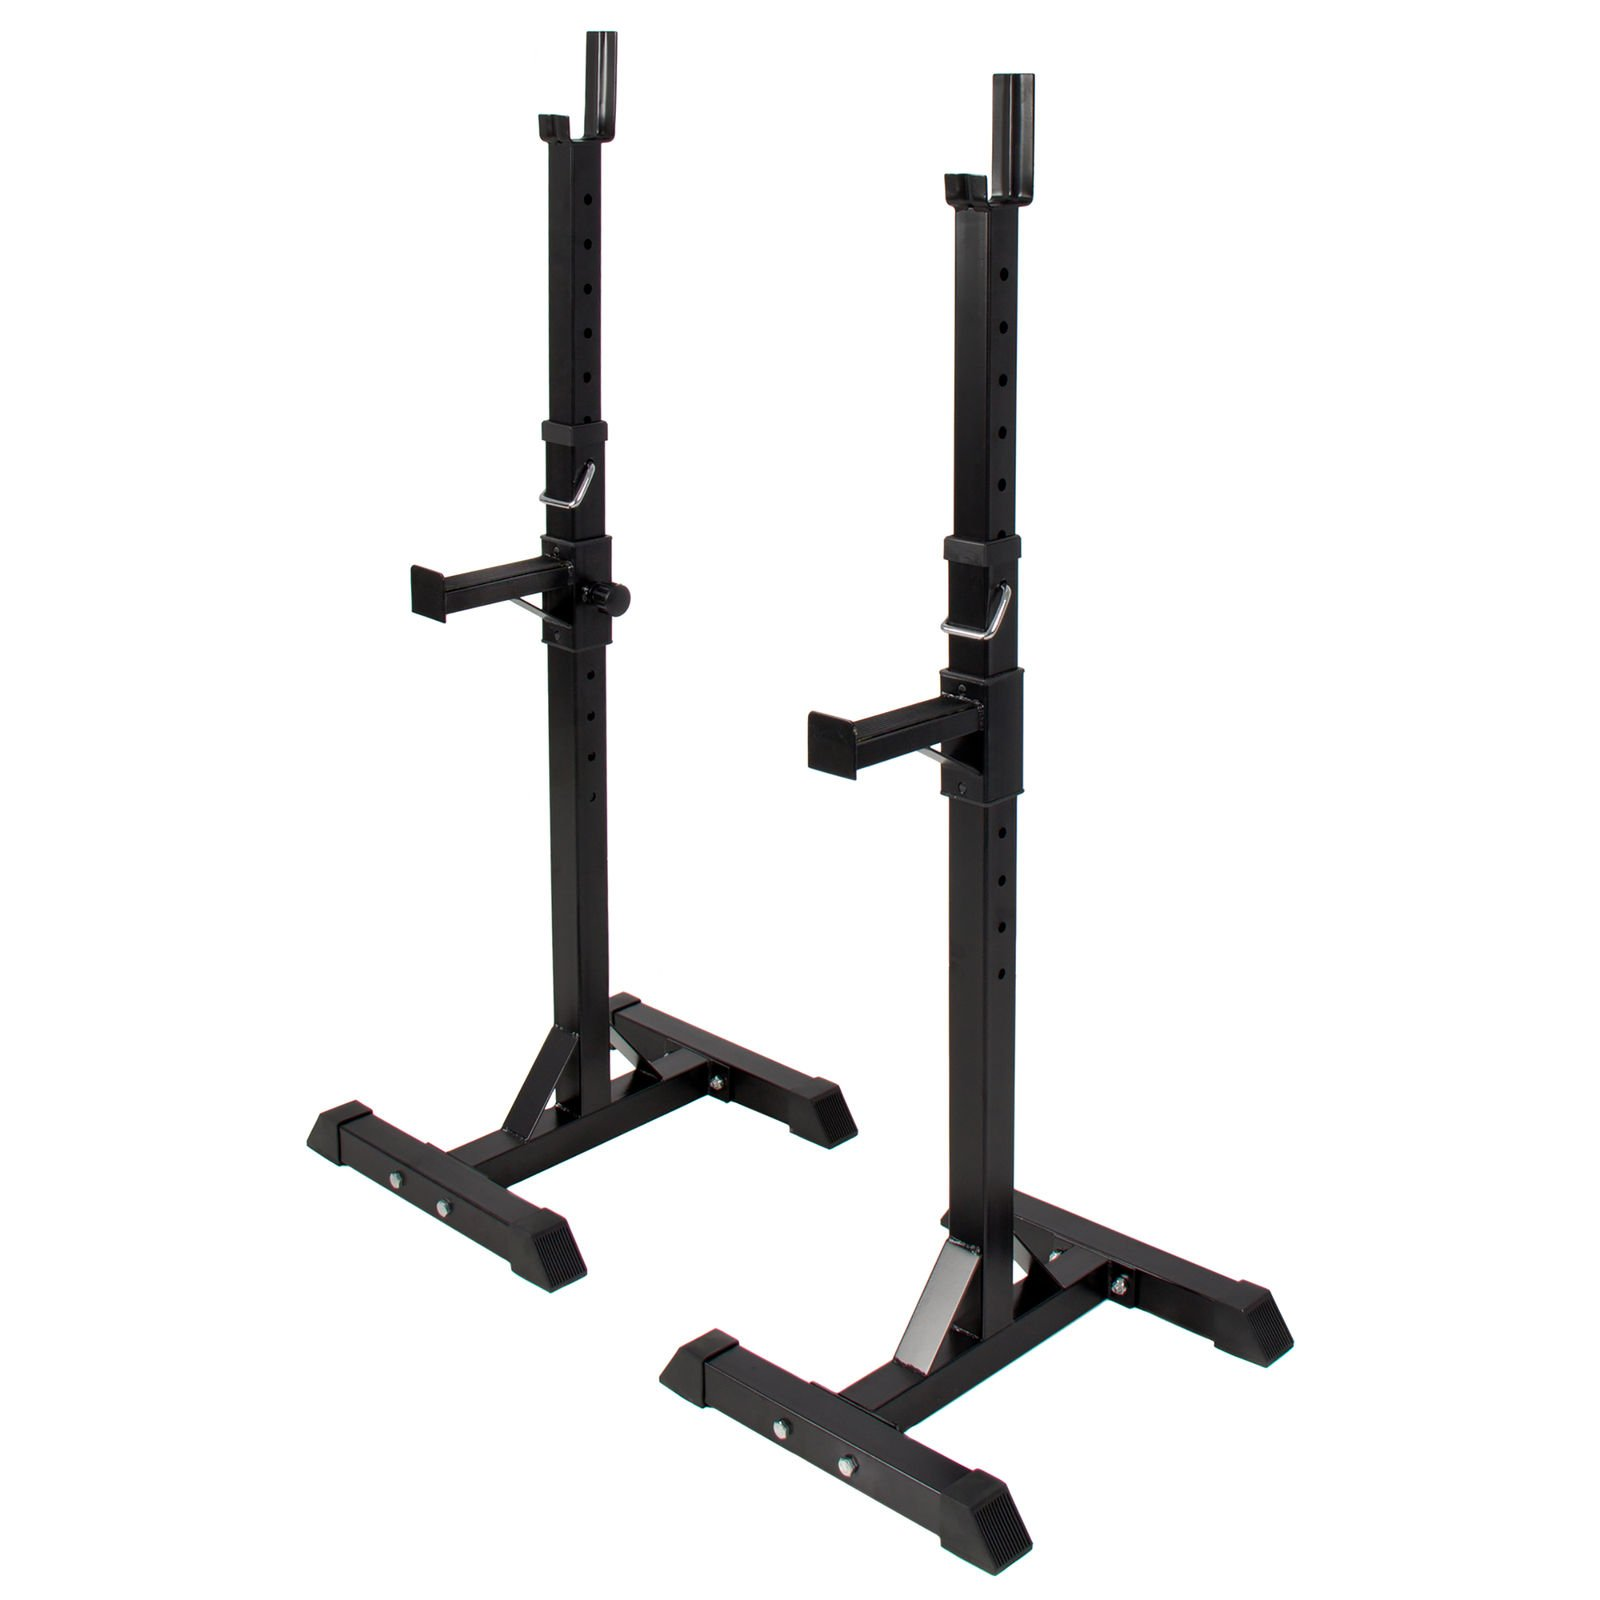 Pair of Adjustable Standard Solid Steel Squat Stands Barbell Free Bench Press